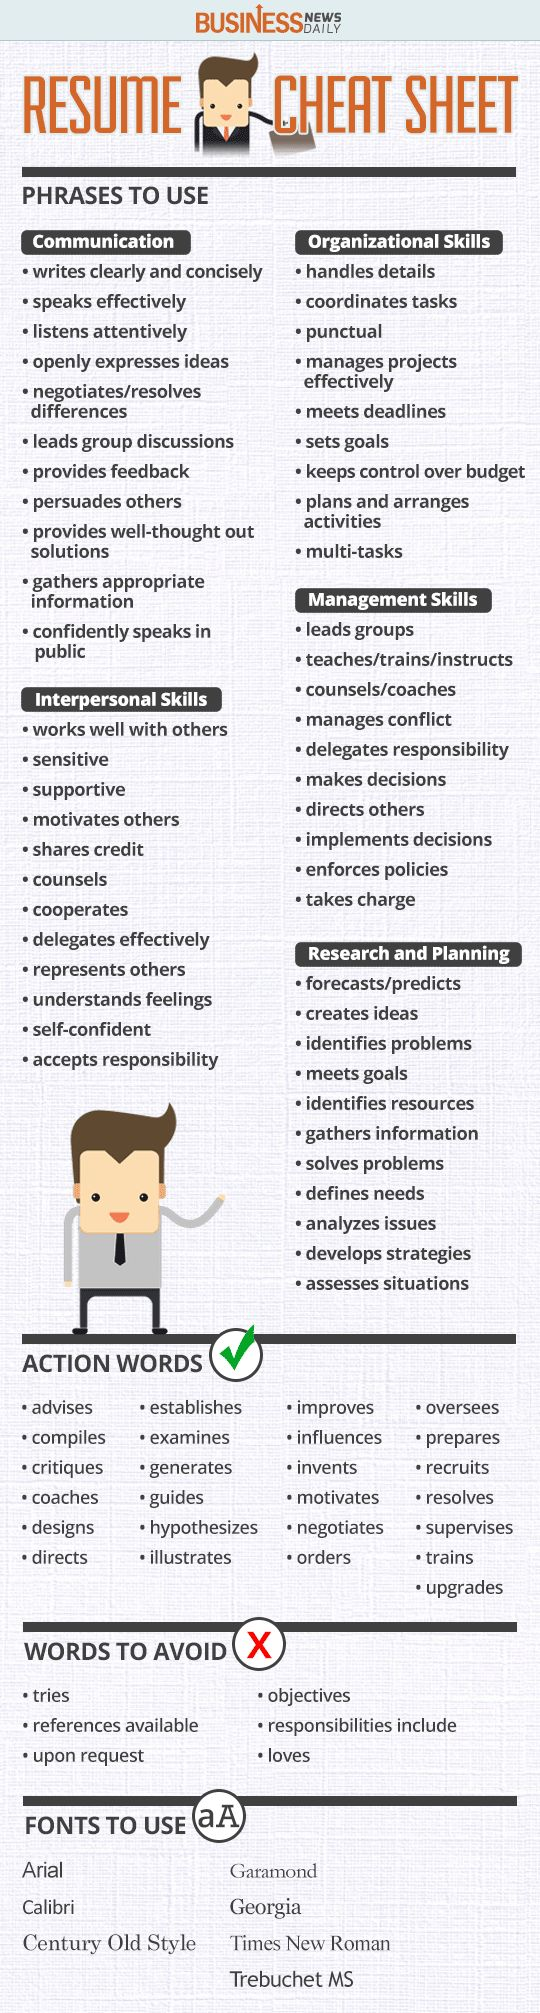 Opposenewapstandardsus  Seductive  Ideas About Resume On Pinterest  Cv Format Resume Cv And  With Licious Resume Cheat Sheet Infographic Andrews Almost Done With A Complete Unit On Employment Which With Amazing Sample Resume For Sales Associate Also How To Make A Resume For First Job In Addition Where To Print Resume And Resume Templates Latex As Well As Should My Resume Be One Page Additionally Resume For Kids From Pinterestcom With Opposenewapstandardsus  Licious  Ideas About Resume On Pinterest  Cv Format Resume Cv And  With Amazing Resume Cheat Sheet Infographic Andrews Almost Done With A Complete Unit On Employment Which And Seductive Sample Resume For Sales Associate Also How To Make A Resume For First Job In Addition Where To Print Resume From Pinterestcom